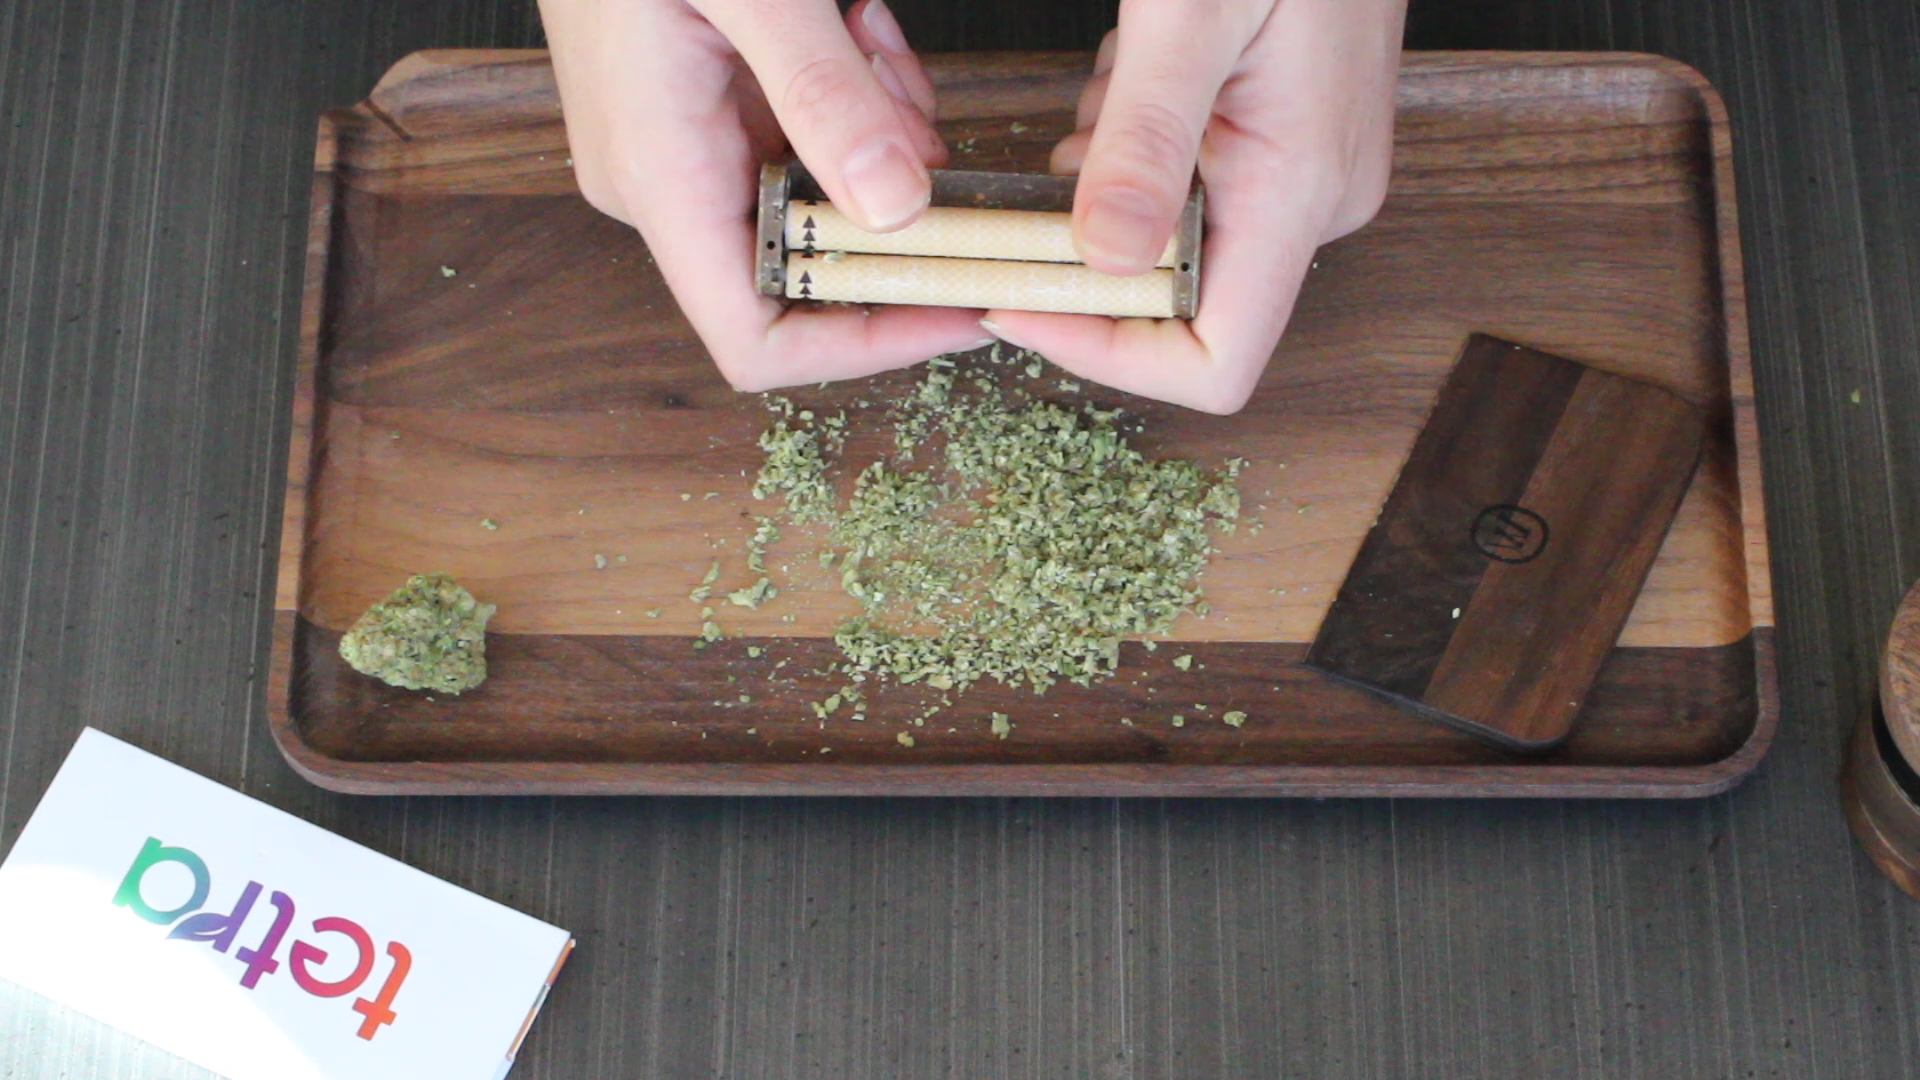 joint rolling techniques